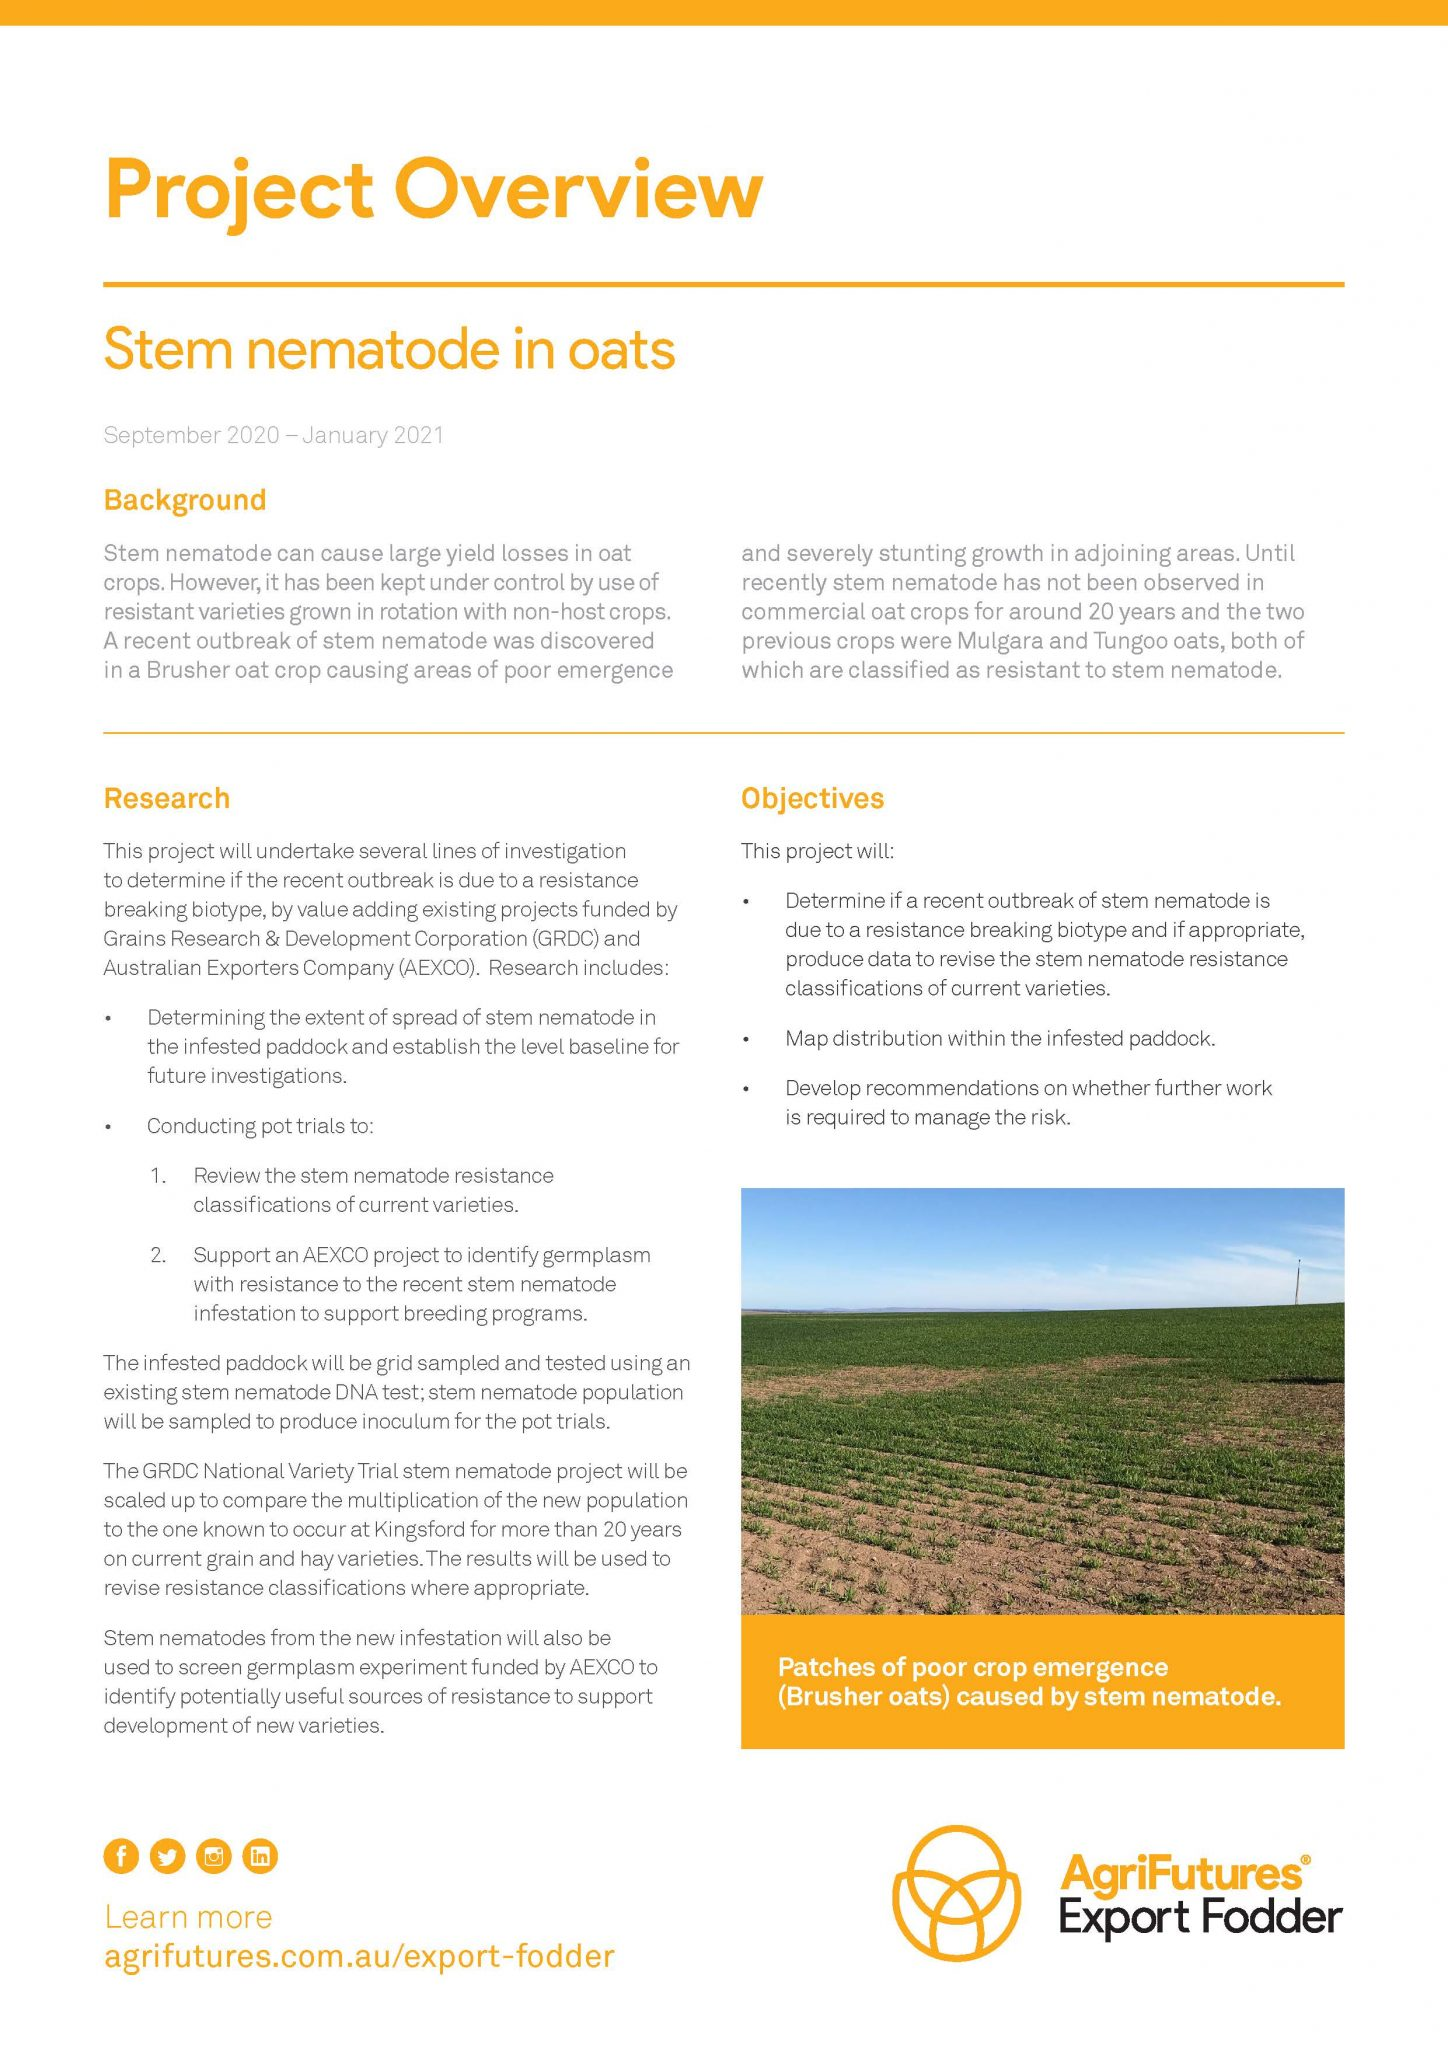 Project overview: Stem nematode in oats - image